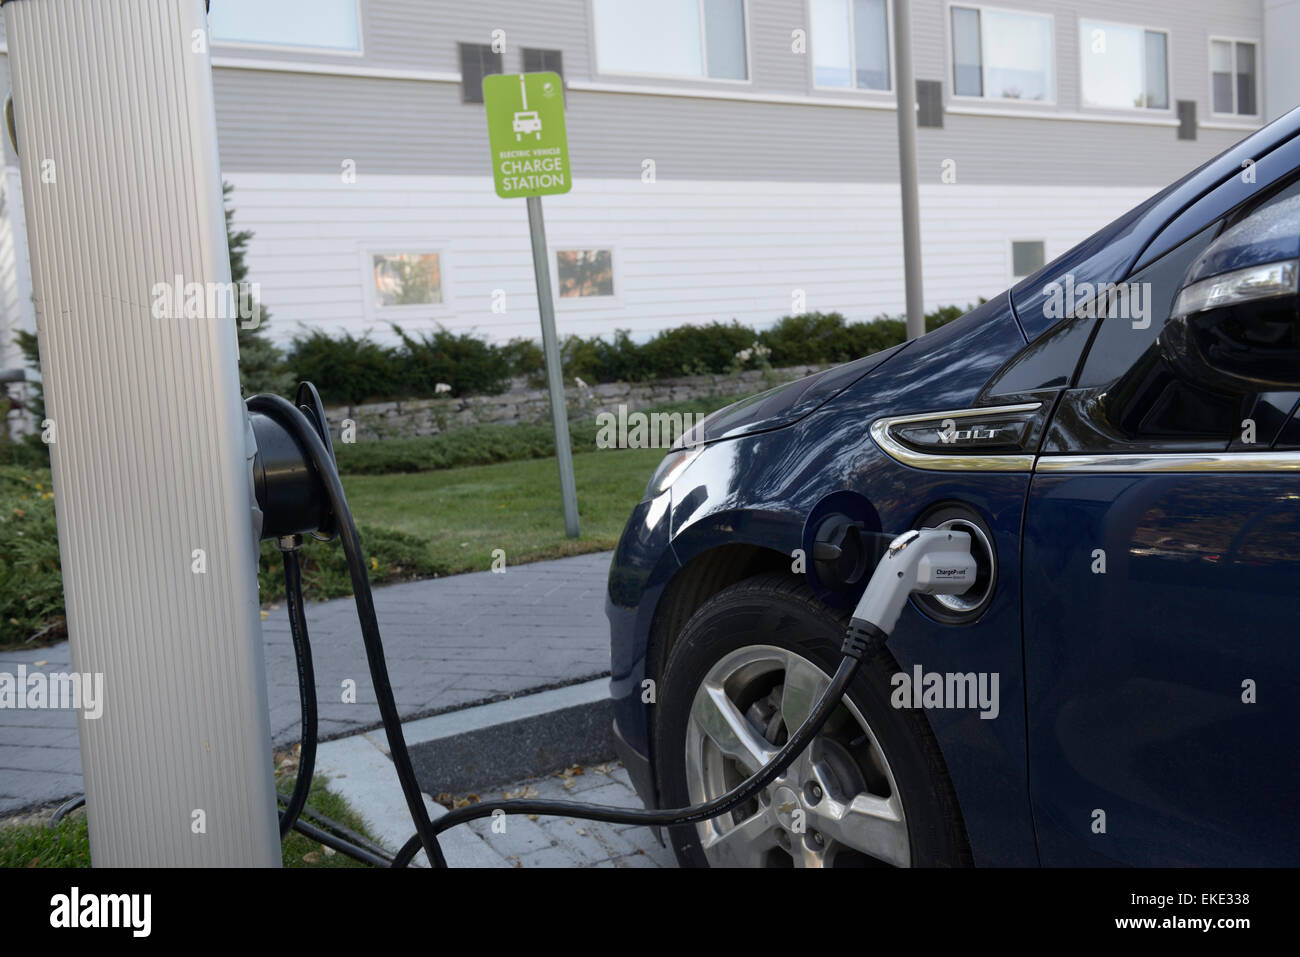 Electric car charging at a hotel parking lot charging station - Stock Image